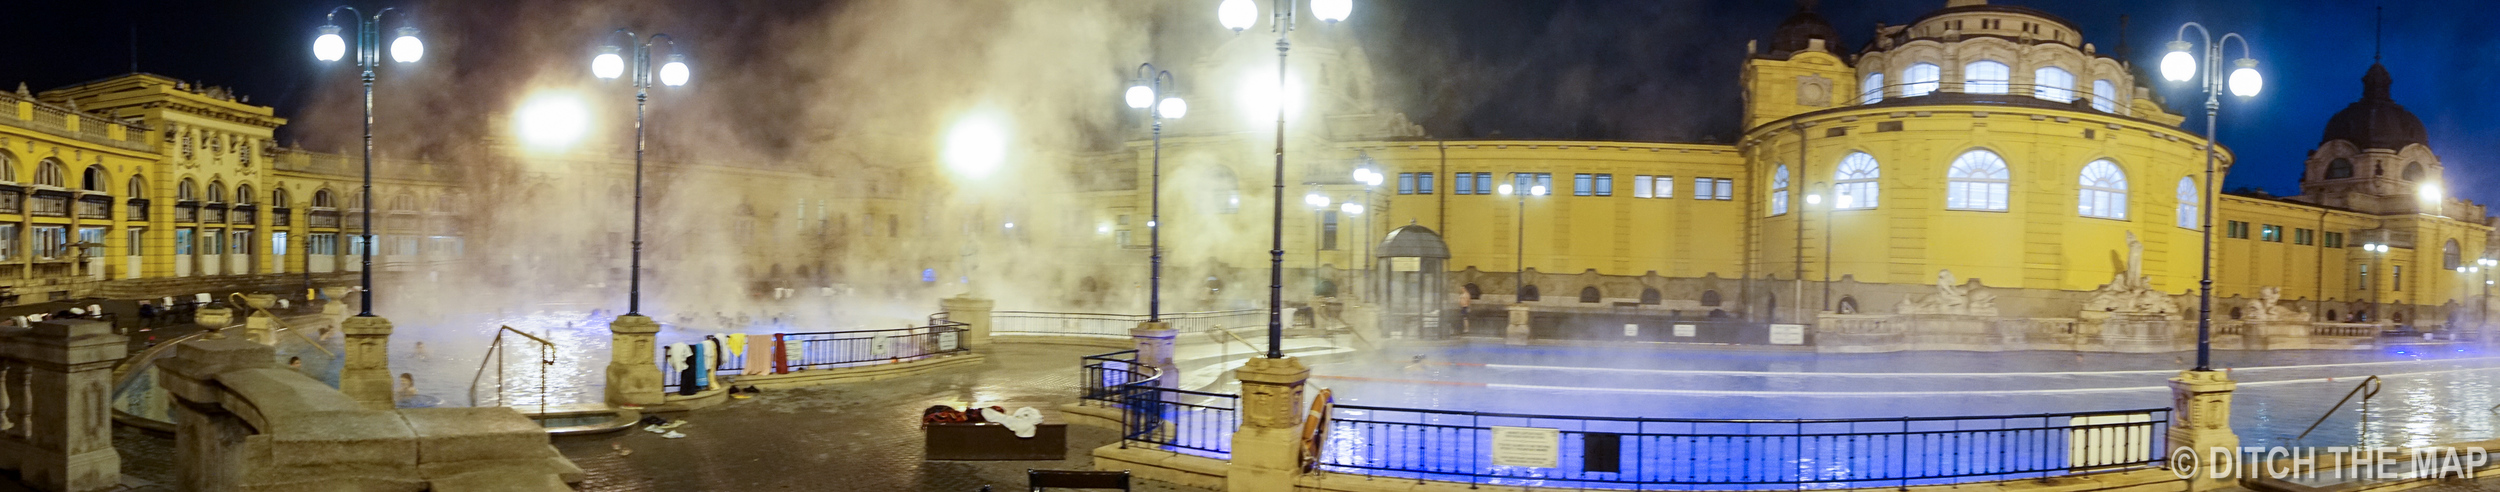 Széchenyi Thermal Bath at City Park in Budapest, Hungary